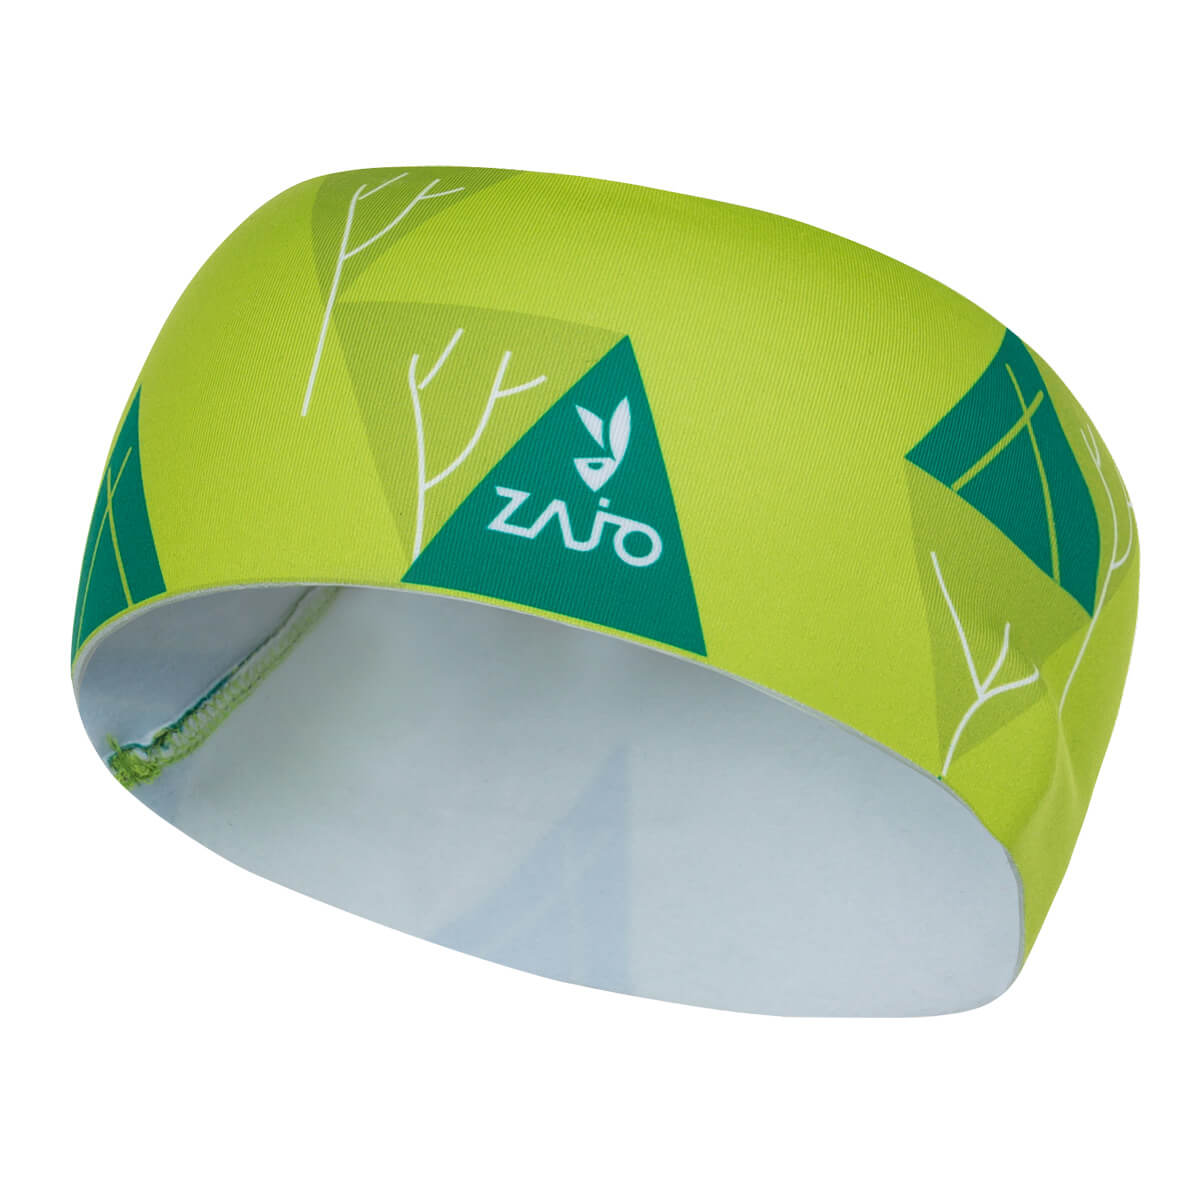 ZAJO Headband čelenka Acid Lime Trees